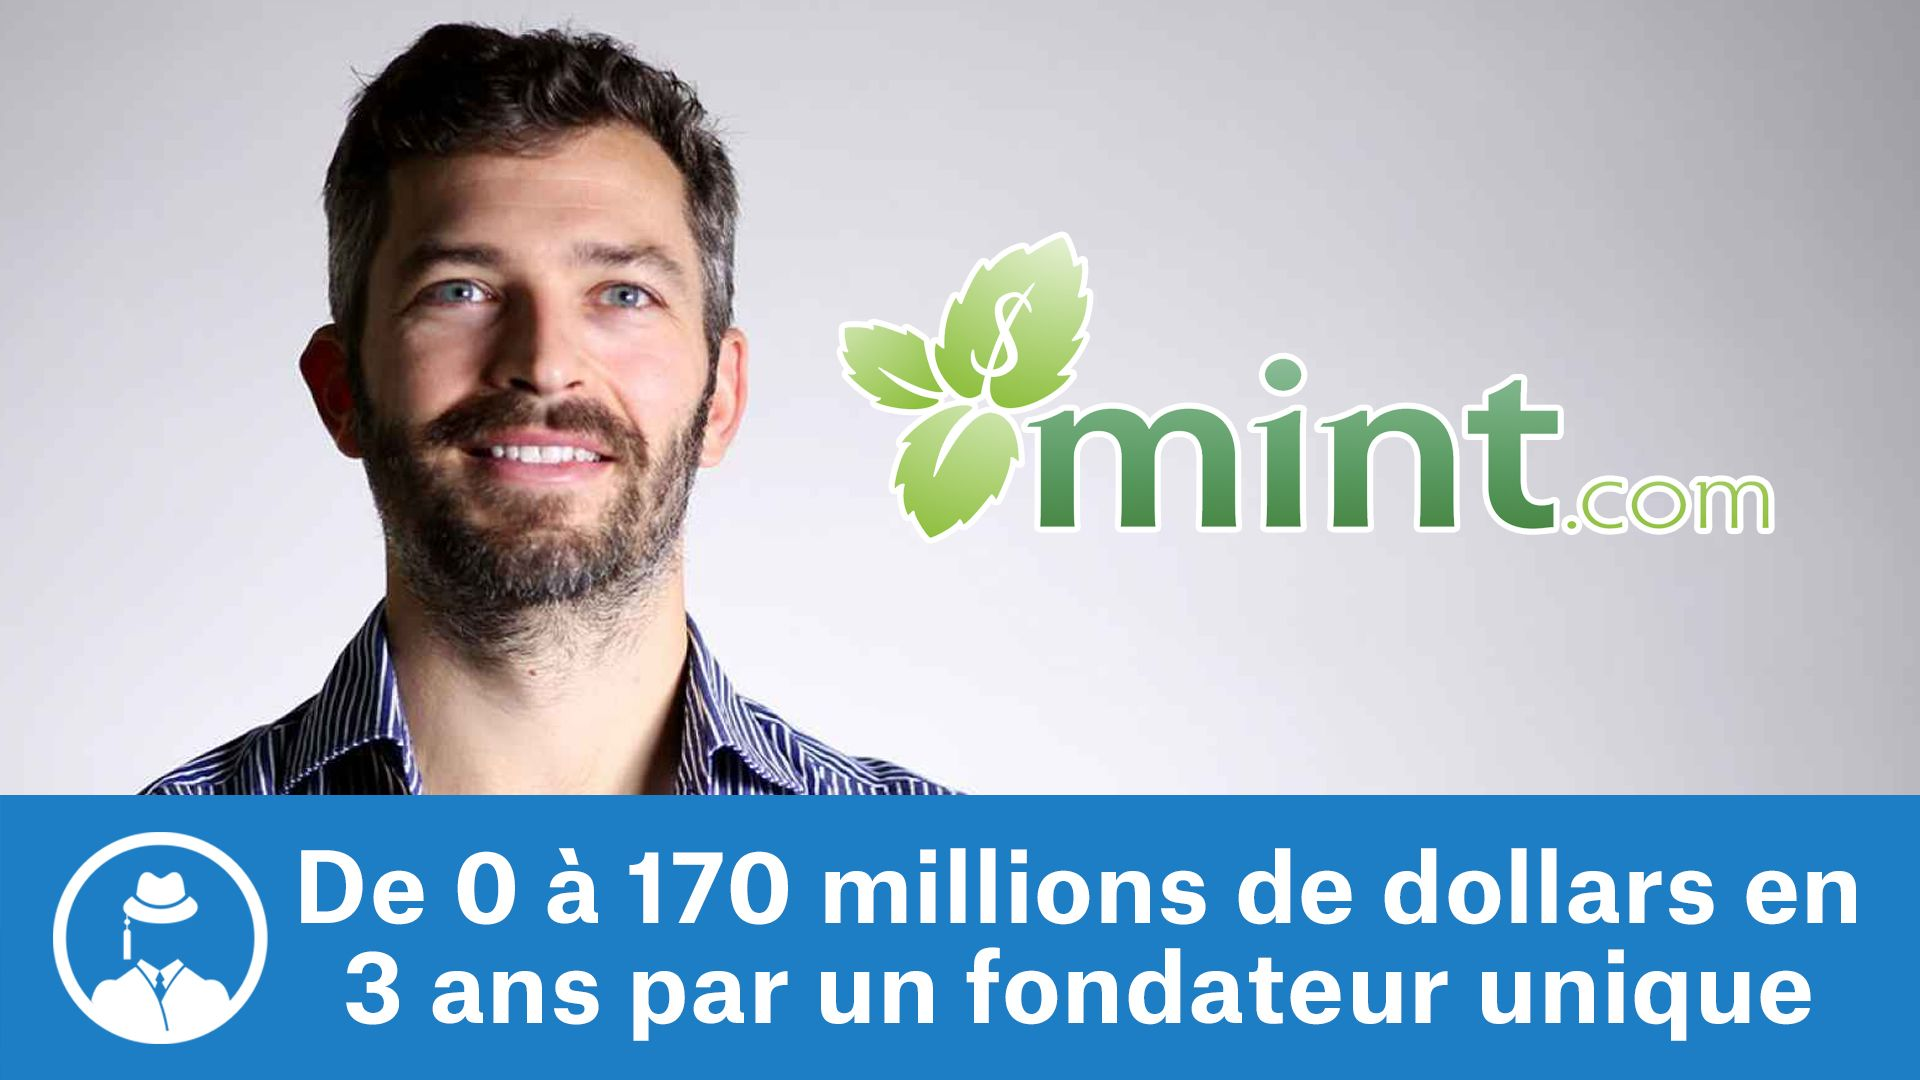 De 0 à 170 millions de dollars en 3 ans par un fondateur unique #GrowthHacking #WebMarketing #FormationGrowthHacking #CentreDeFormationFrance #TunnelAARRR #AARRR #SocialMedia #CommunityManagement #SEO #Mint